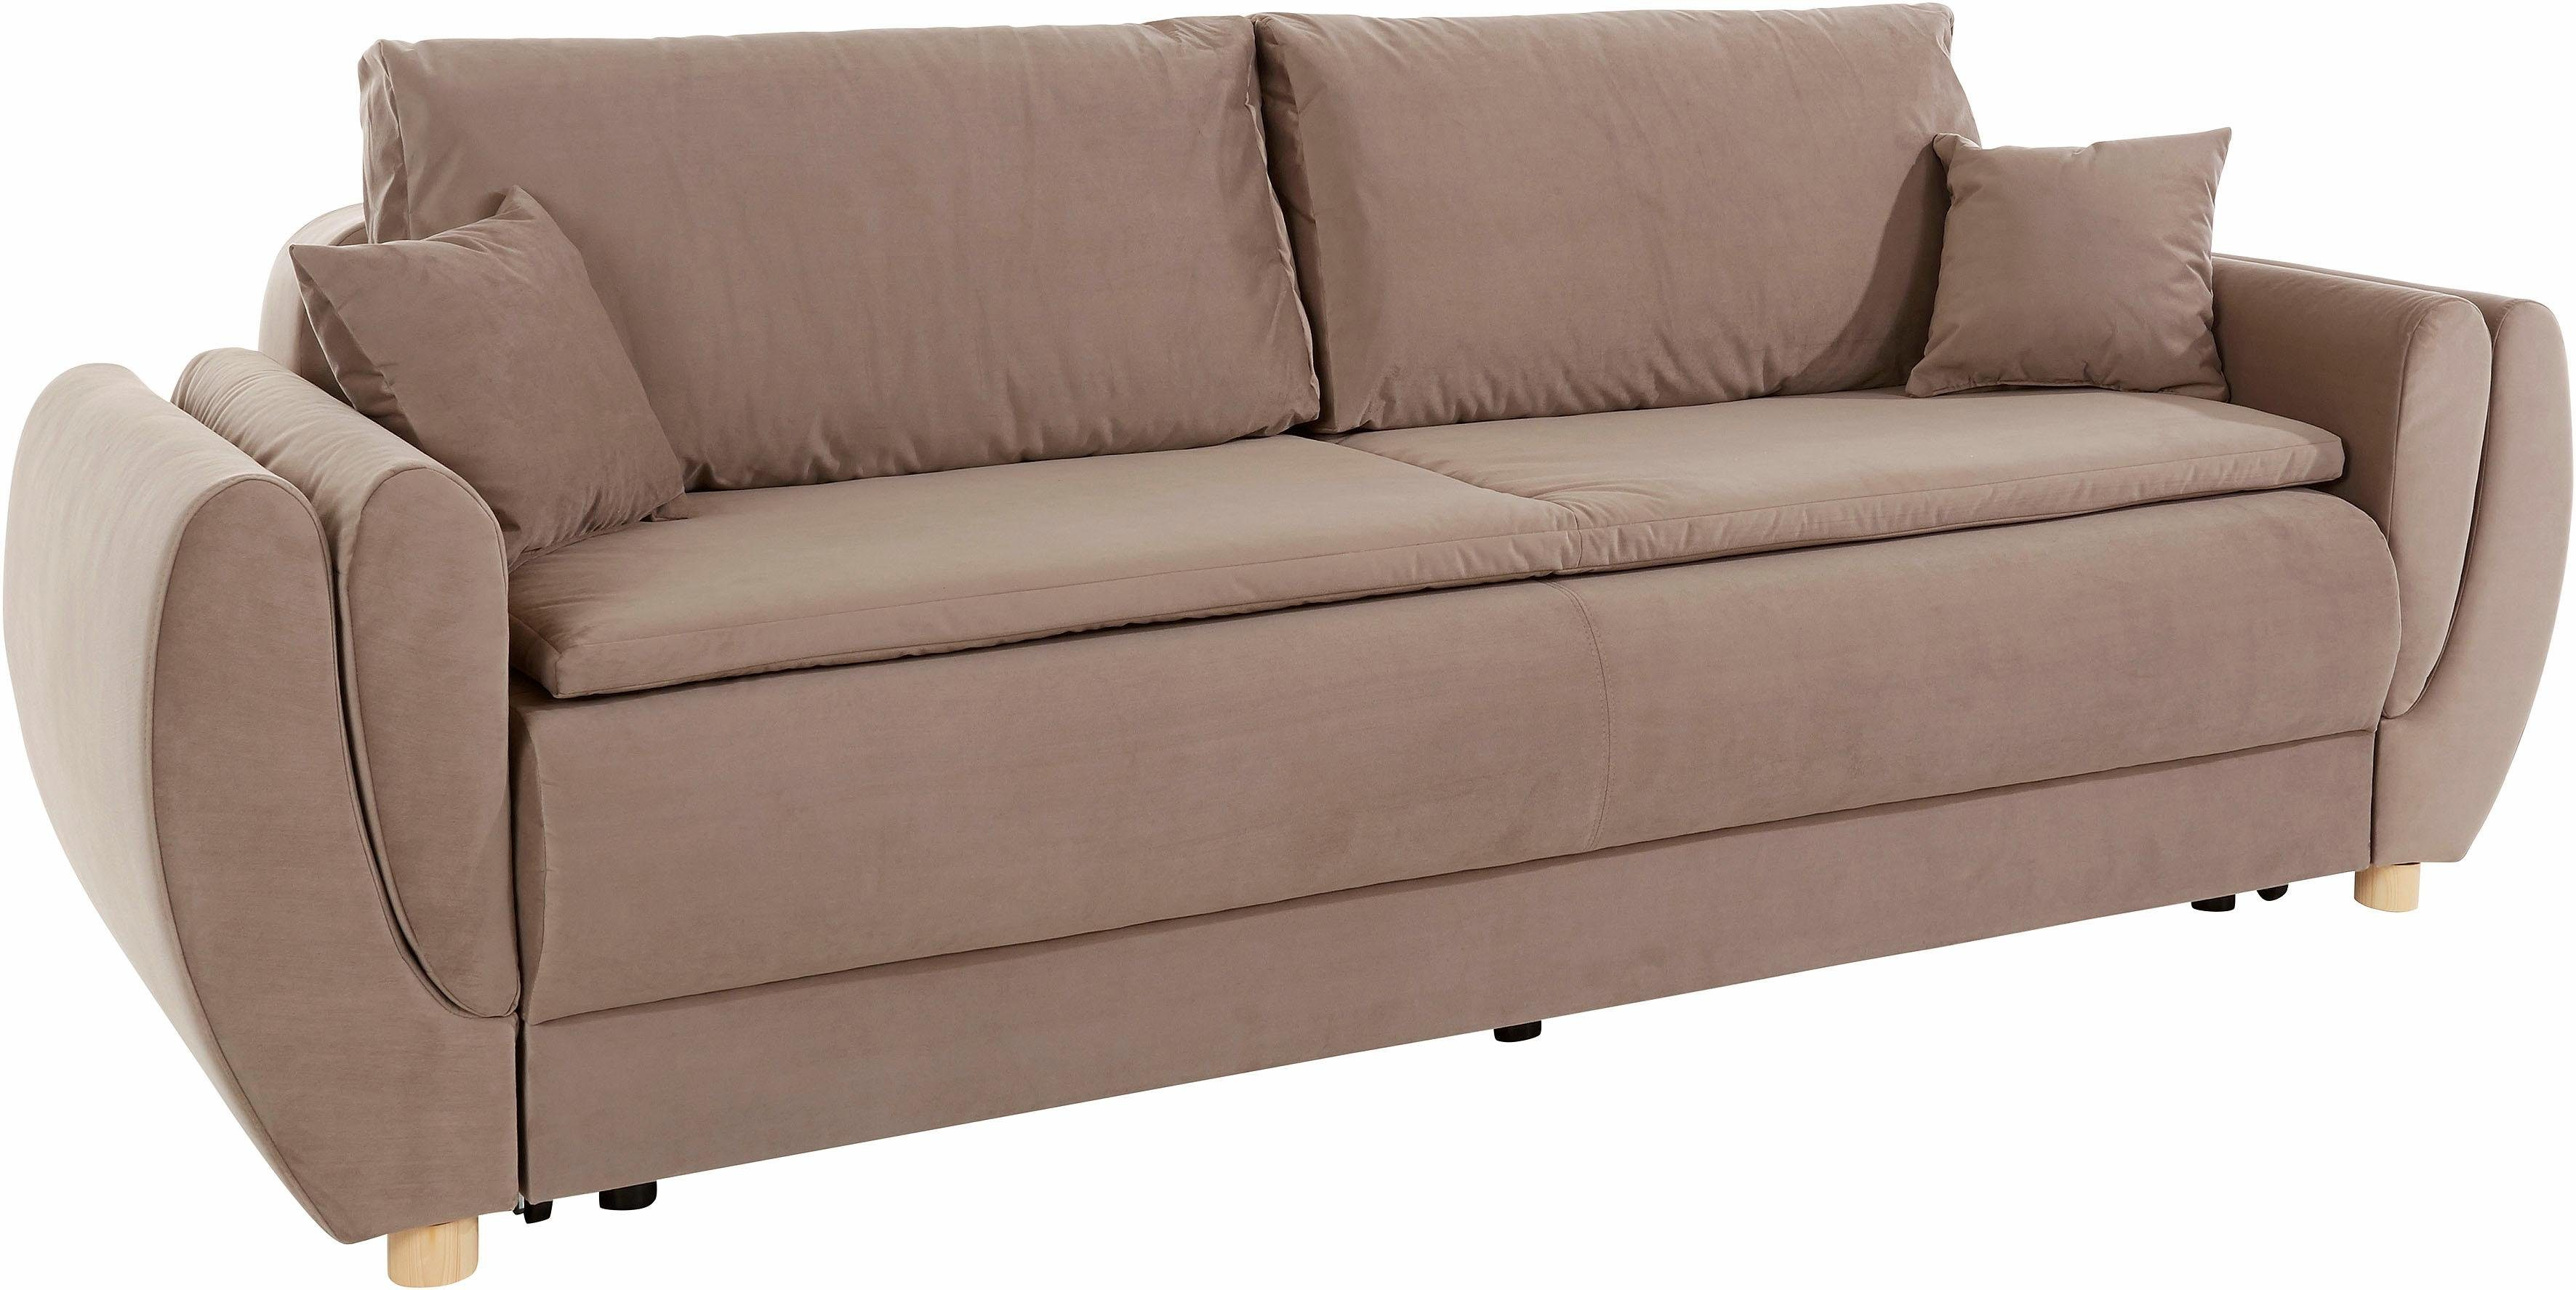 Bettsofa Kaufen Places Of Style Boxspring-schlafsofa »lausanne« Mit